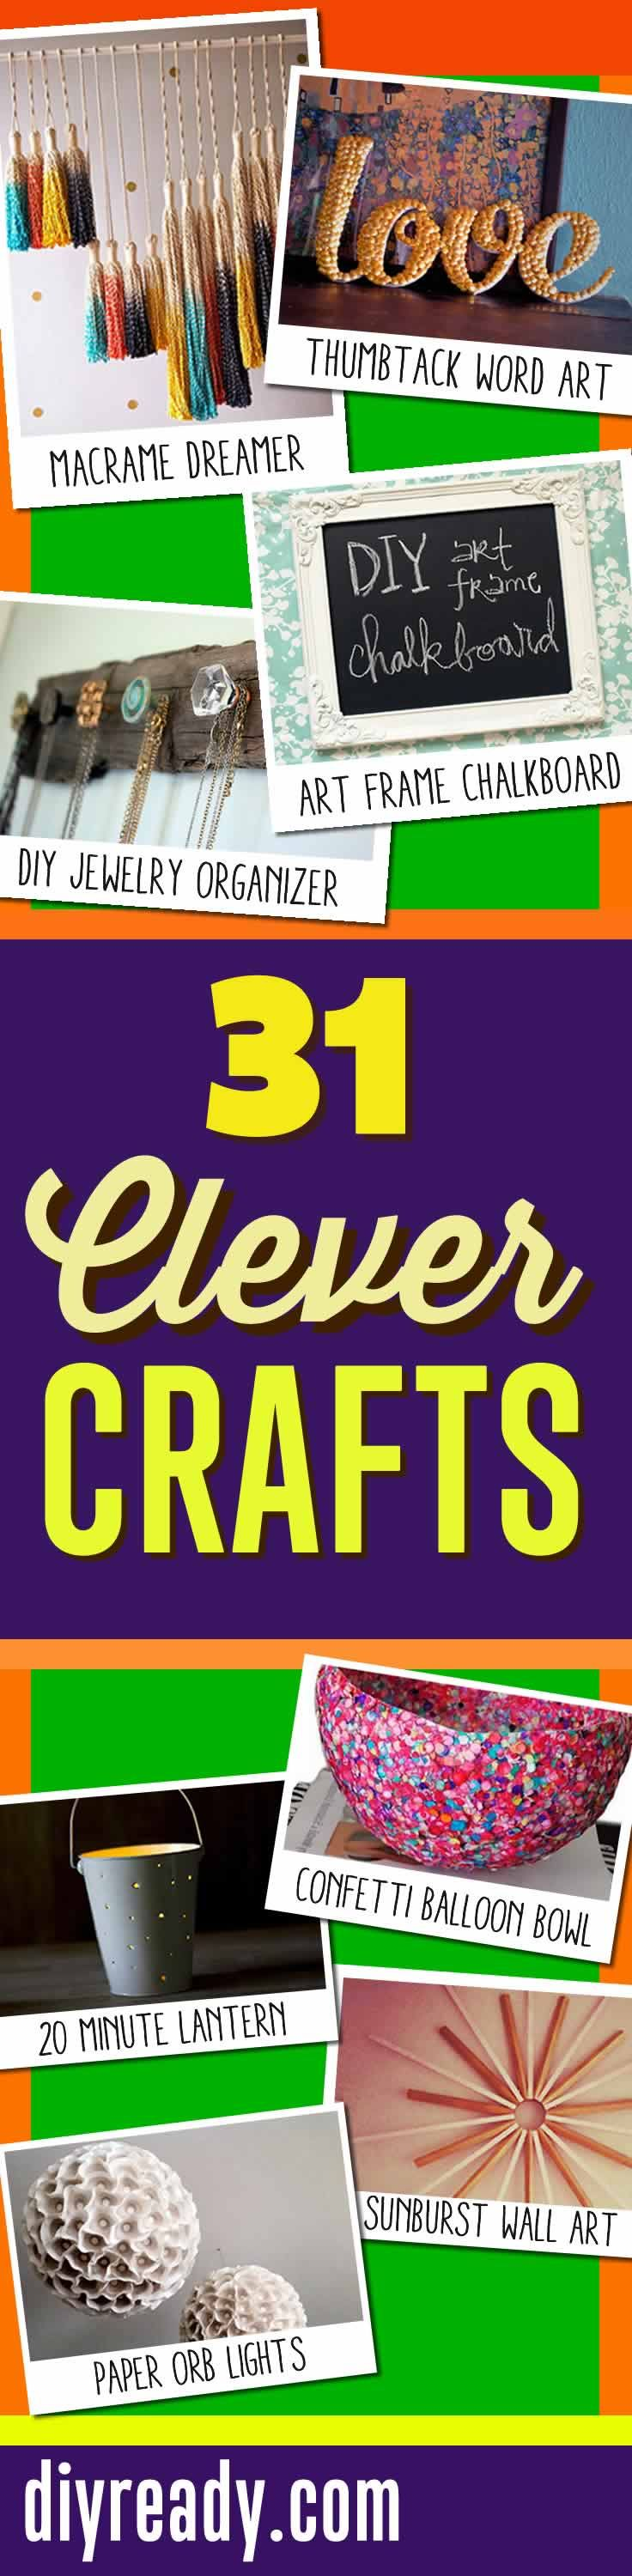 31 Clever DIY Crafts. Save On Crafts with these Easy DIY Ideas for Cool DIY Projects and Creative Craft Tutorials | Crafts To Make and Sell | http://diyready.com/save-on-easy-diy-crafts/